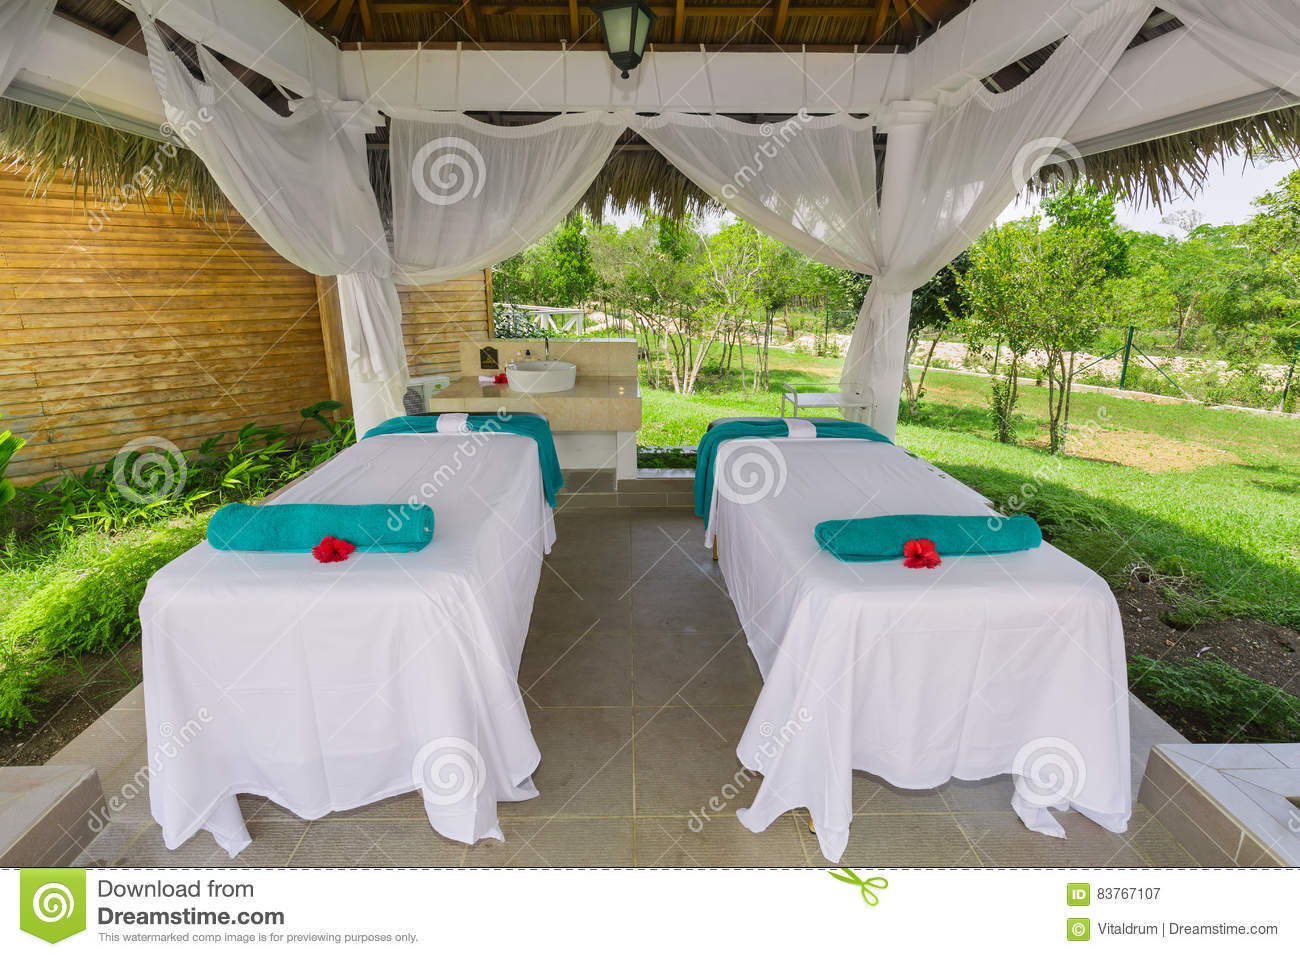 Garden tent - a comfortable and comfortable lounge 99